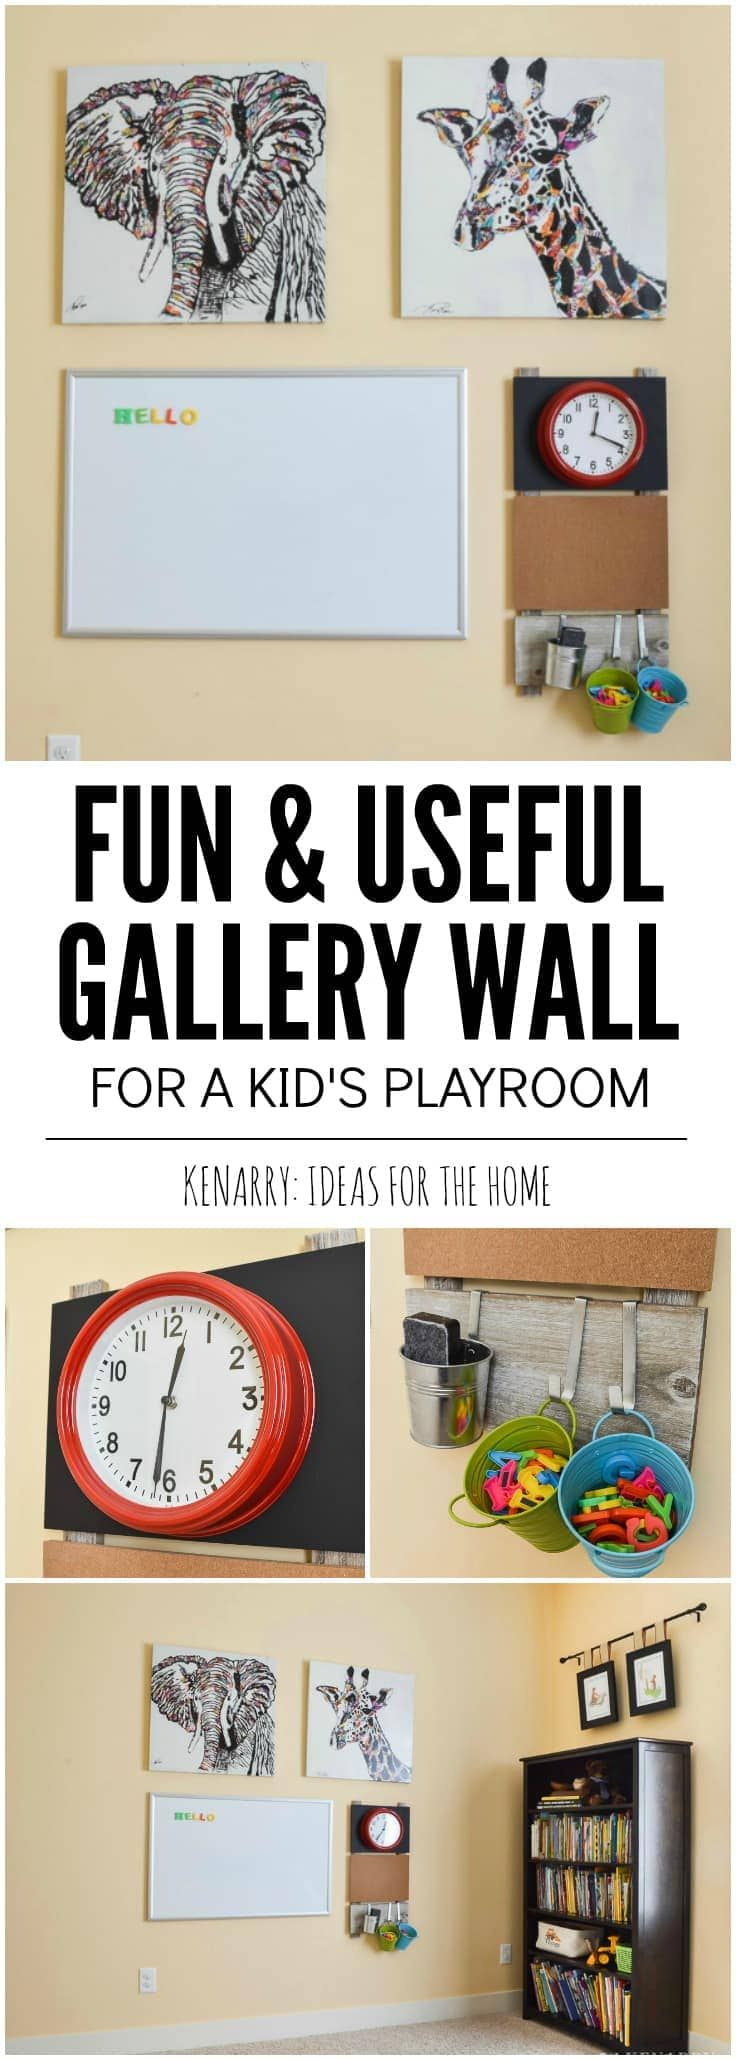 Playroom wall decor can be fun and useful! Use a magnetic marker board or dry erase board, a large red clock and big canvas elephant art and giraffe art to make a gallery wall for children.